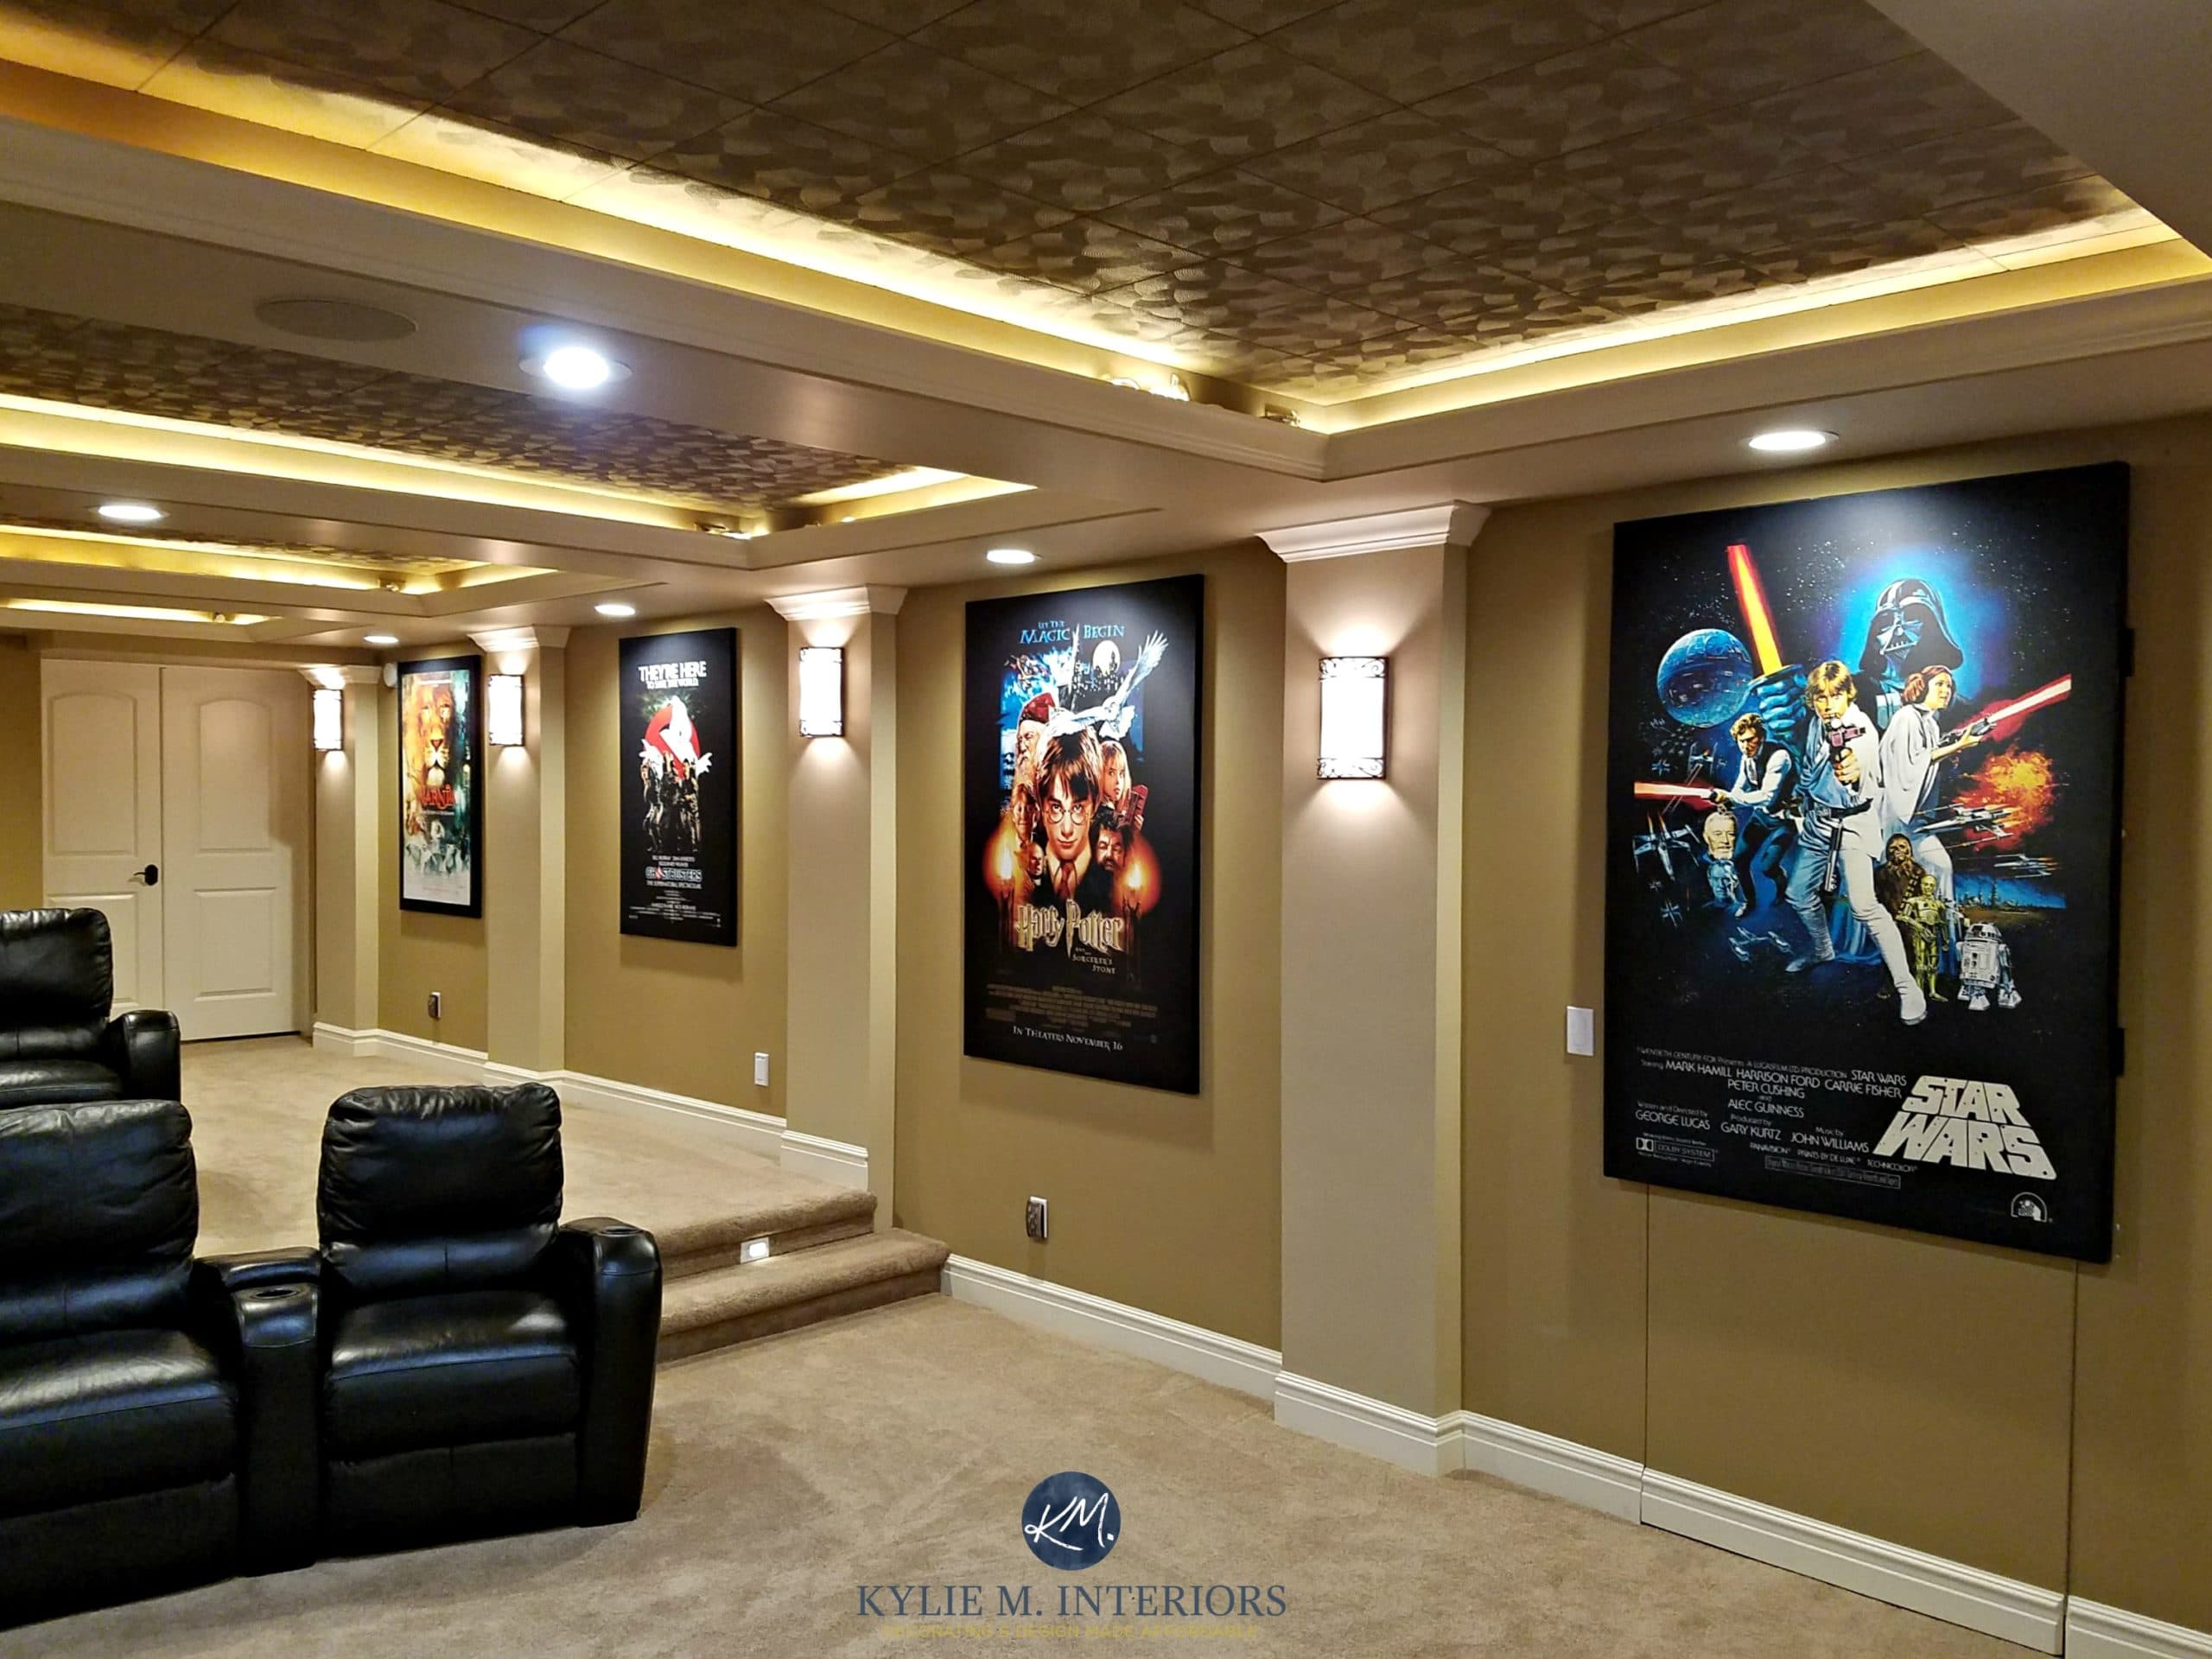 Ceiling Design Online Home Theatre Room With Textured Acoustic Tile Ceiling Movie Posters